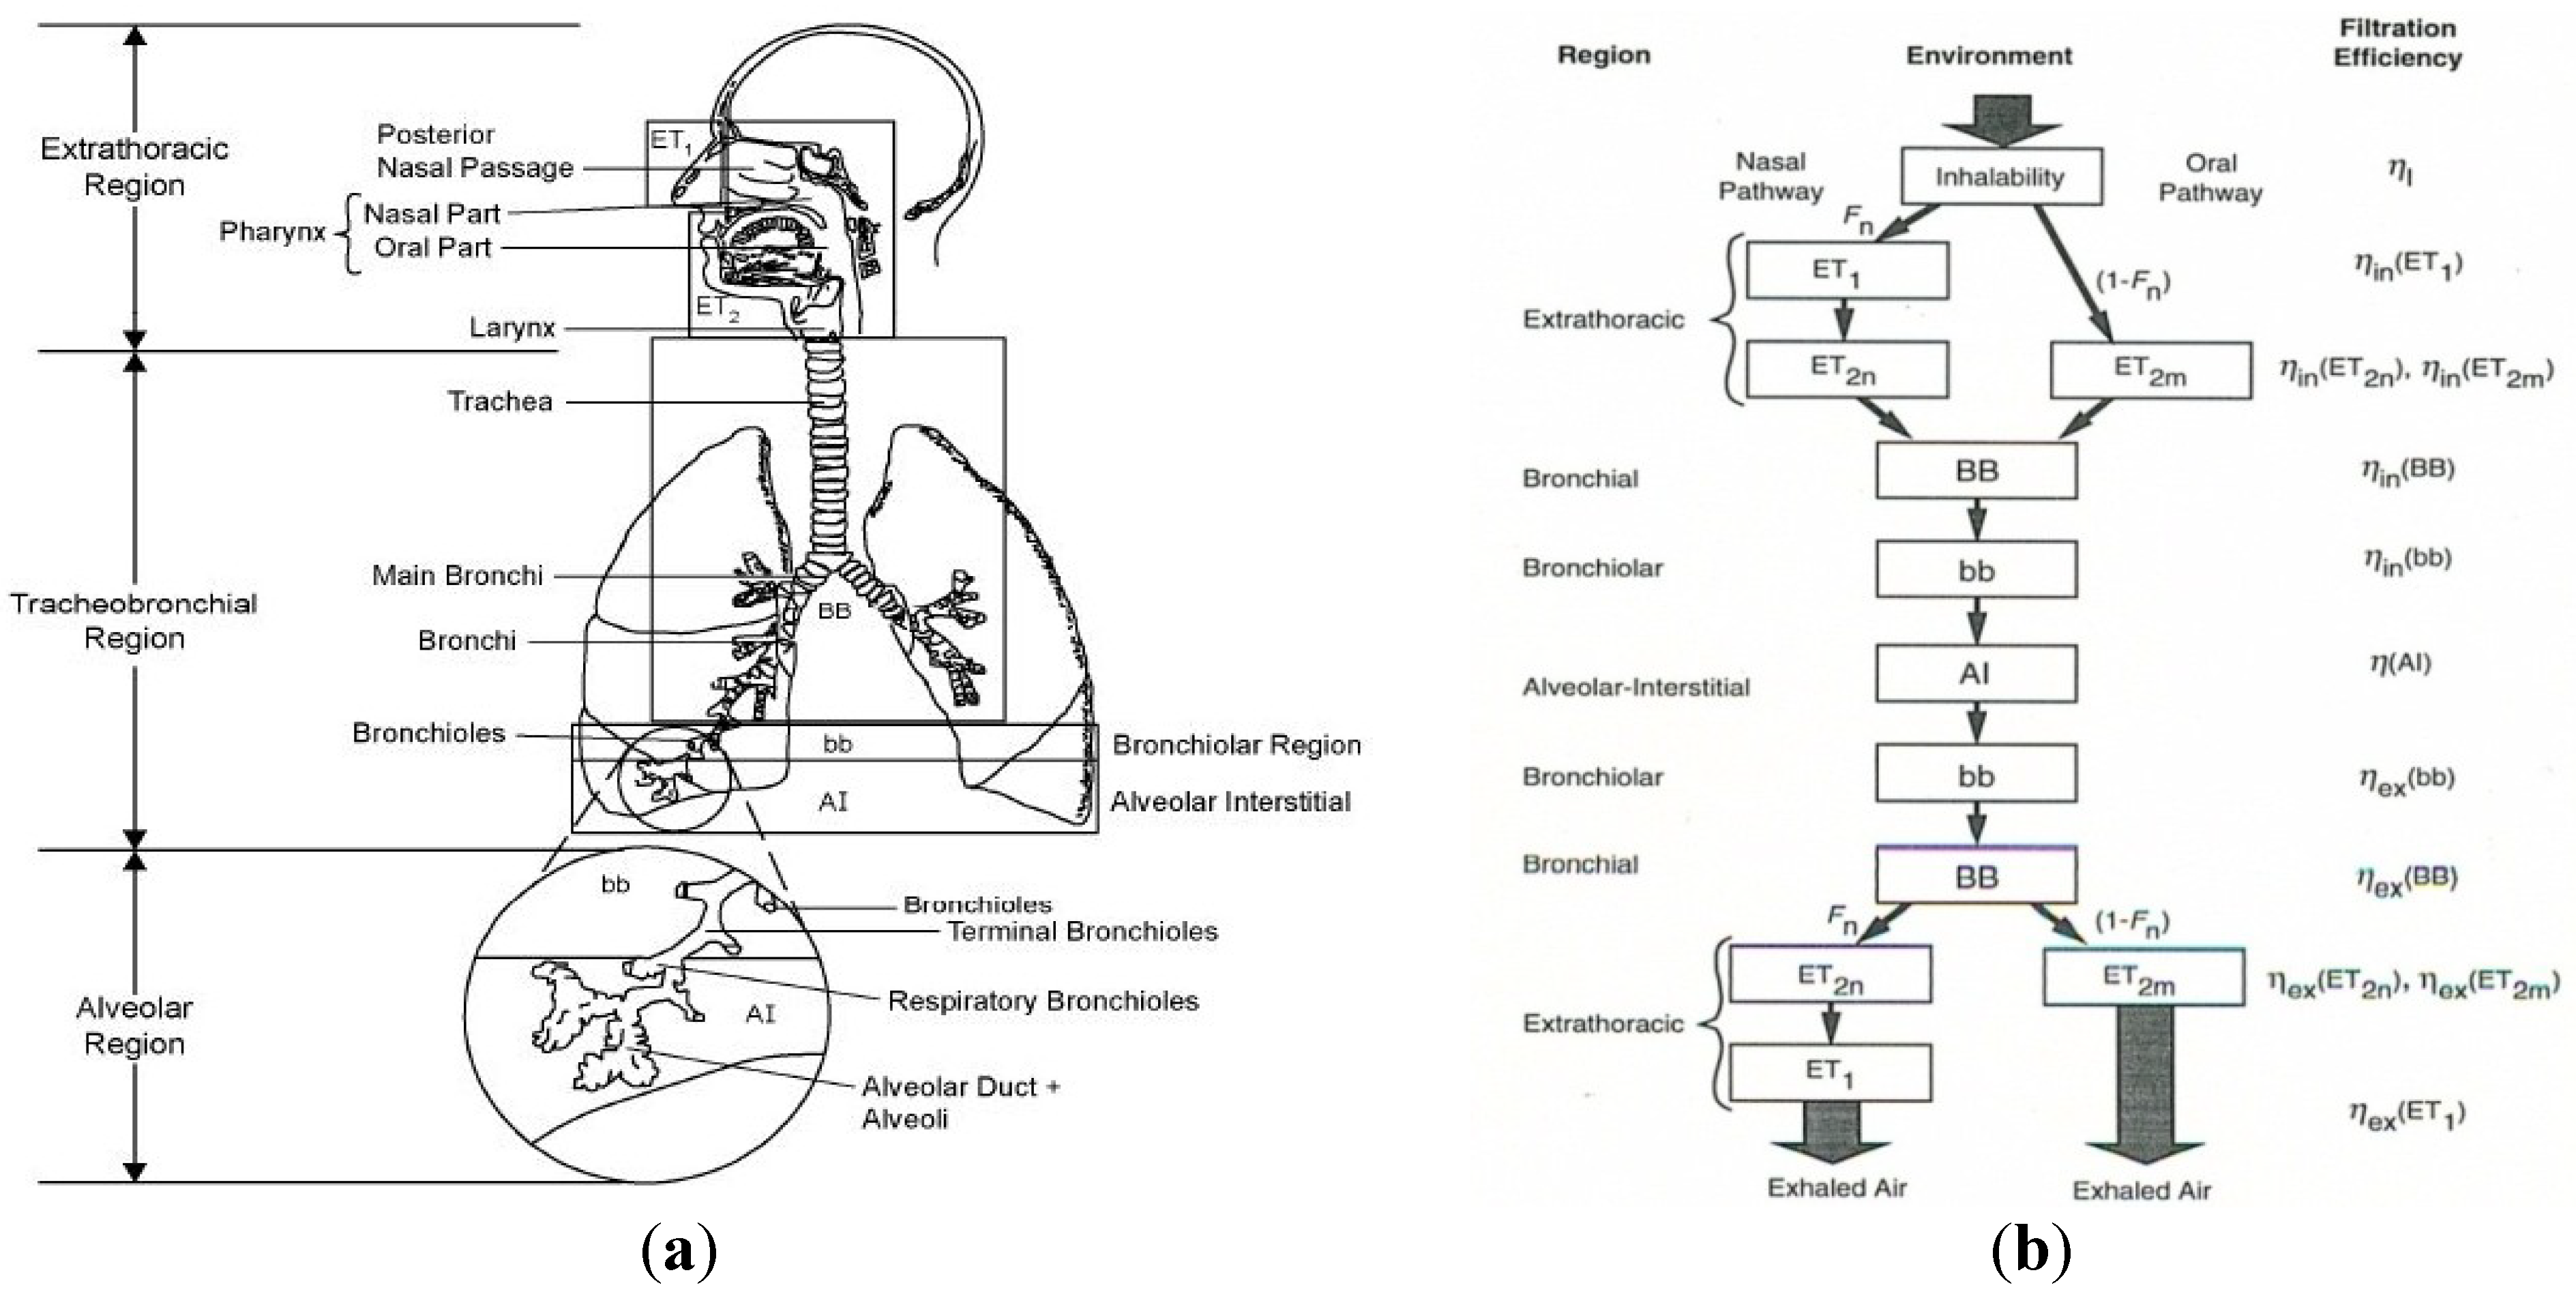 Analysis of the behavior of the respiratory system with constant inspiratory flow.